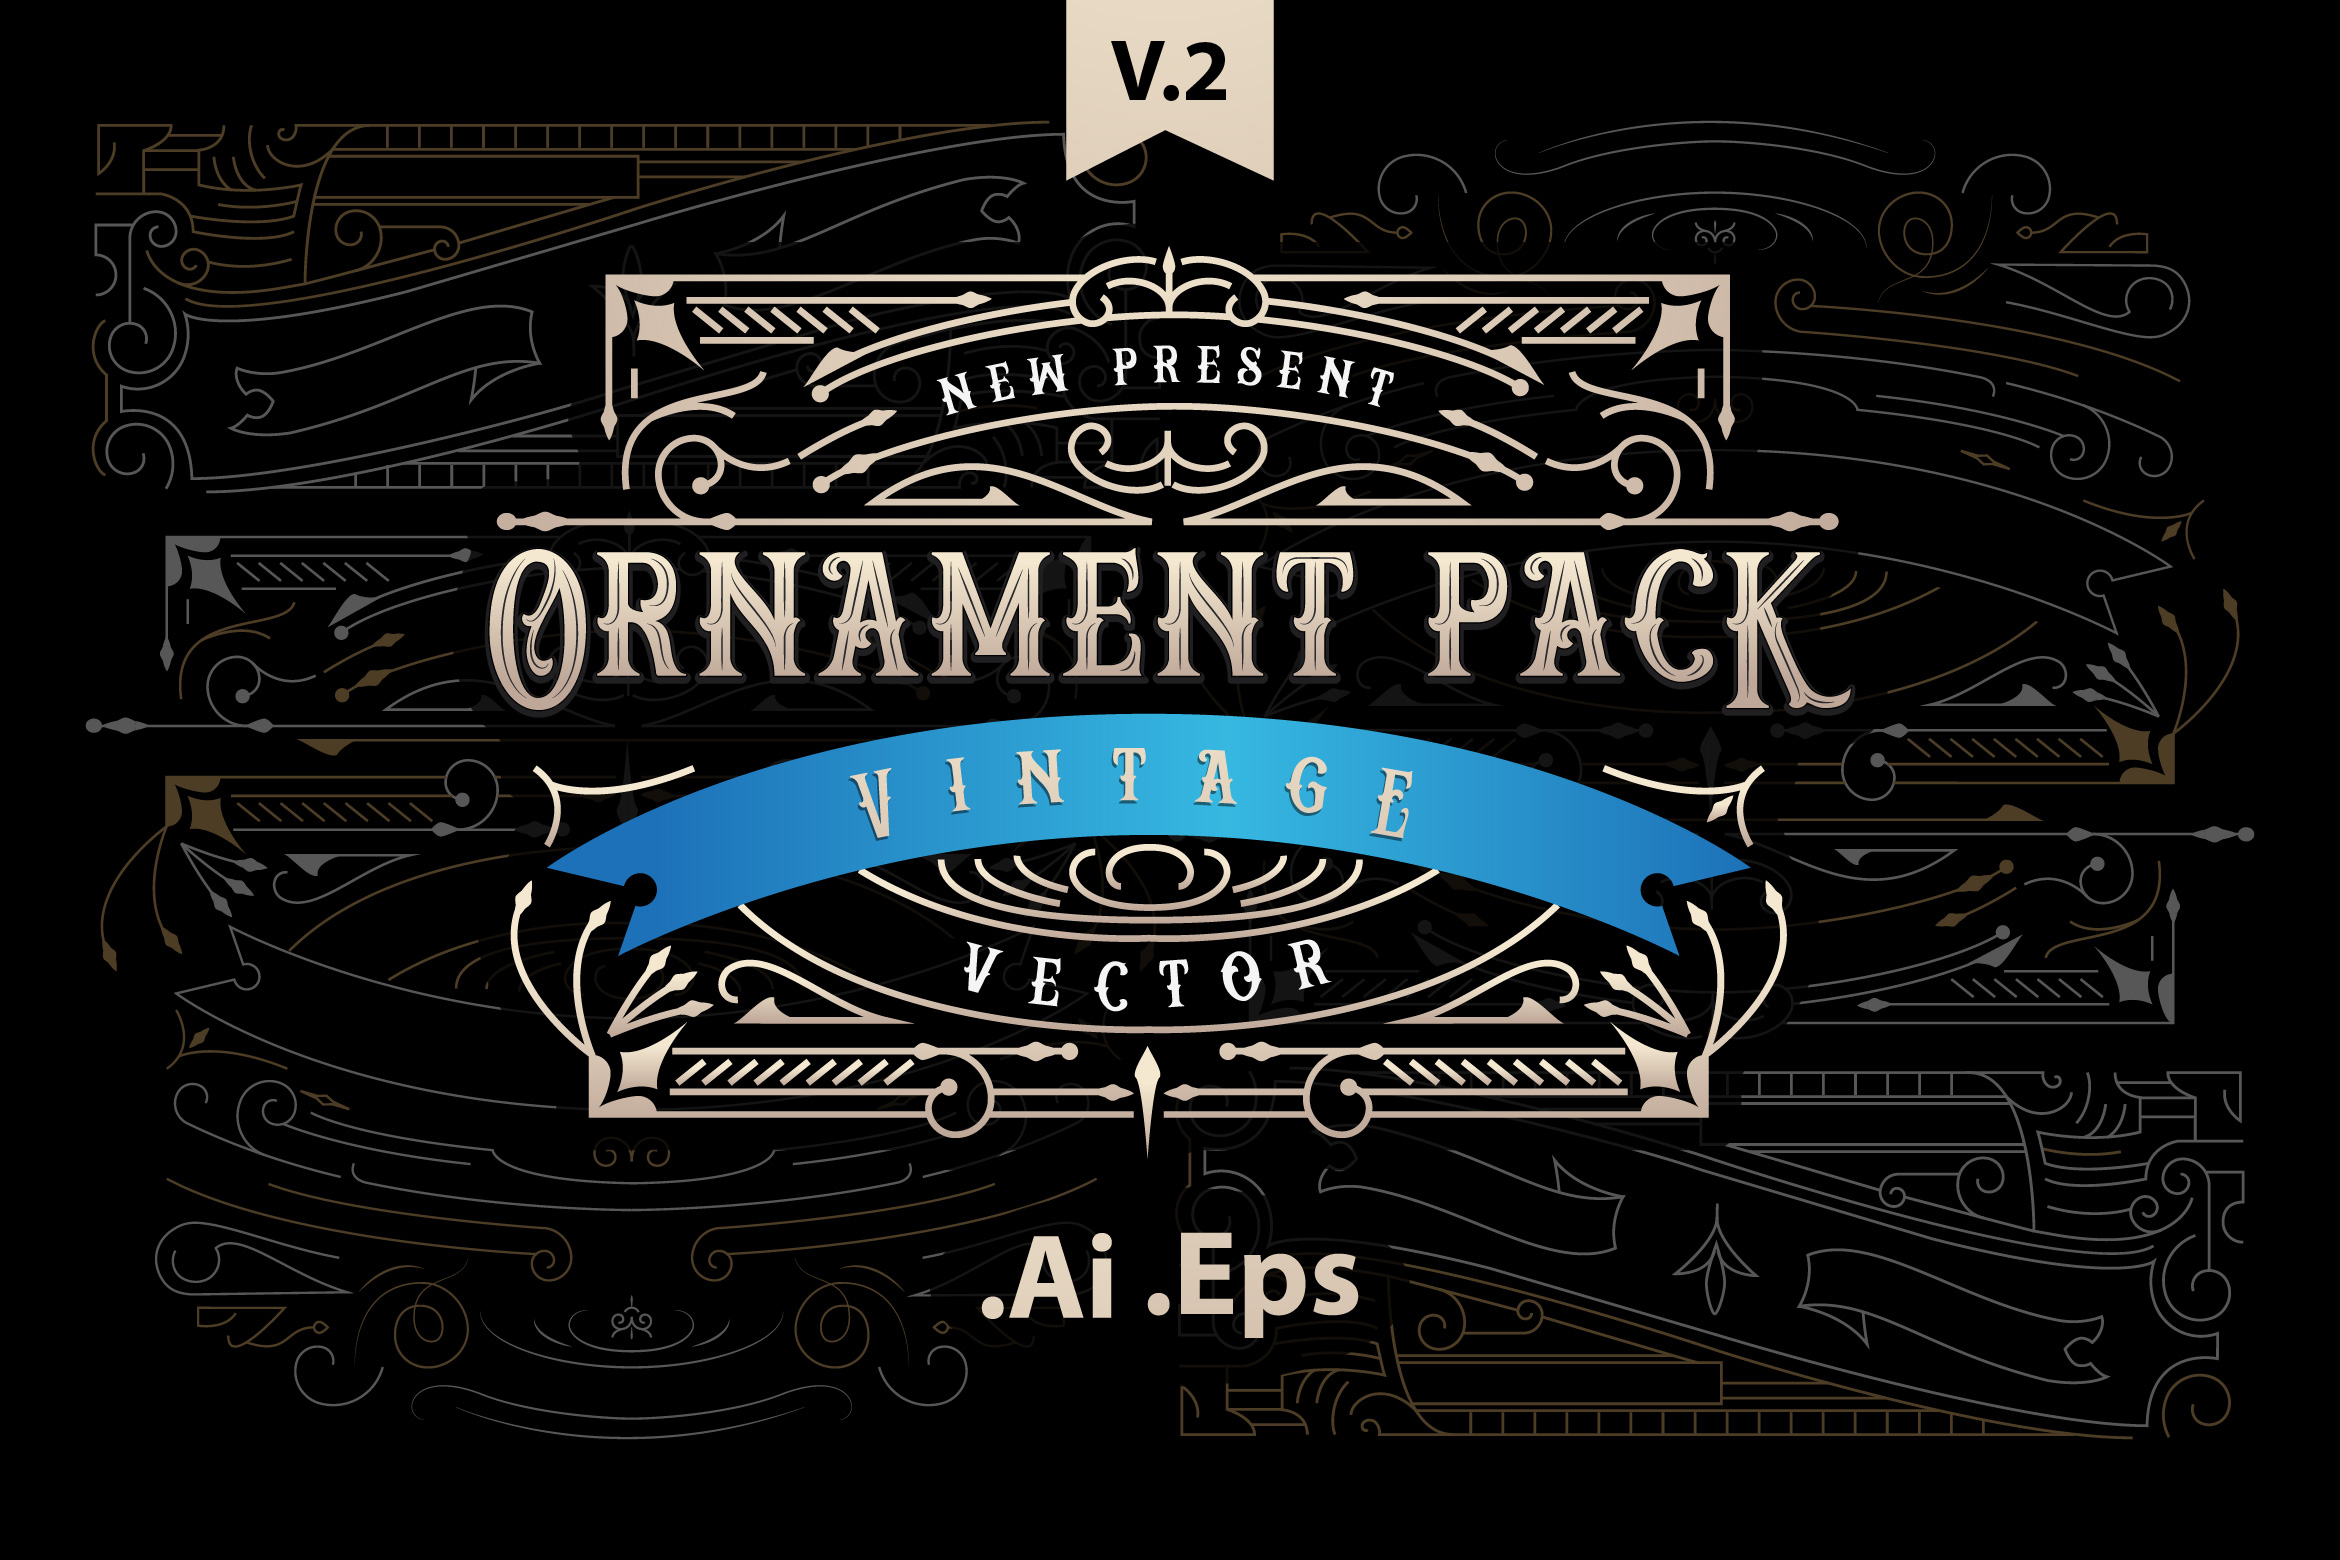 Ornament Pack Vintage 2 Graphic By storictype